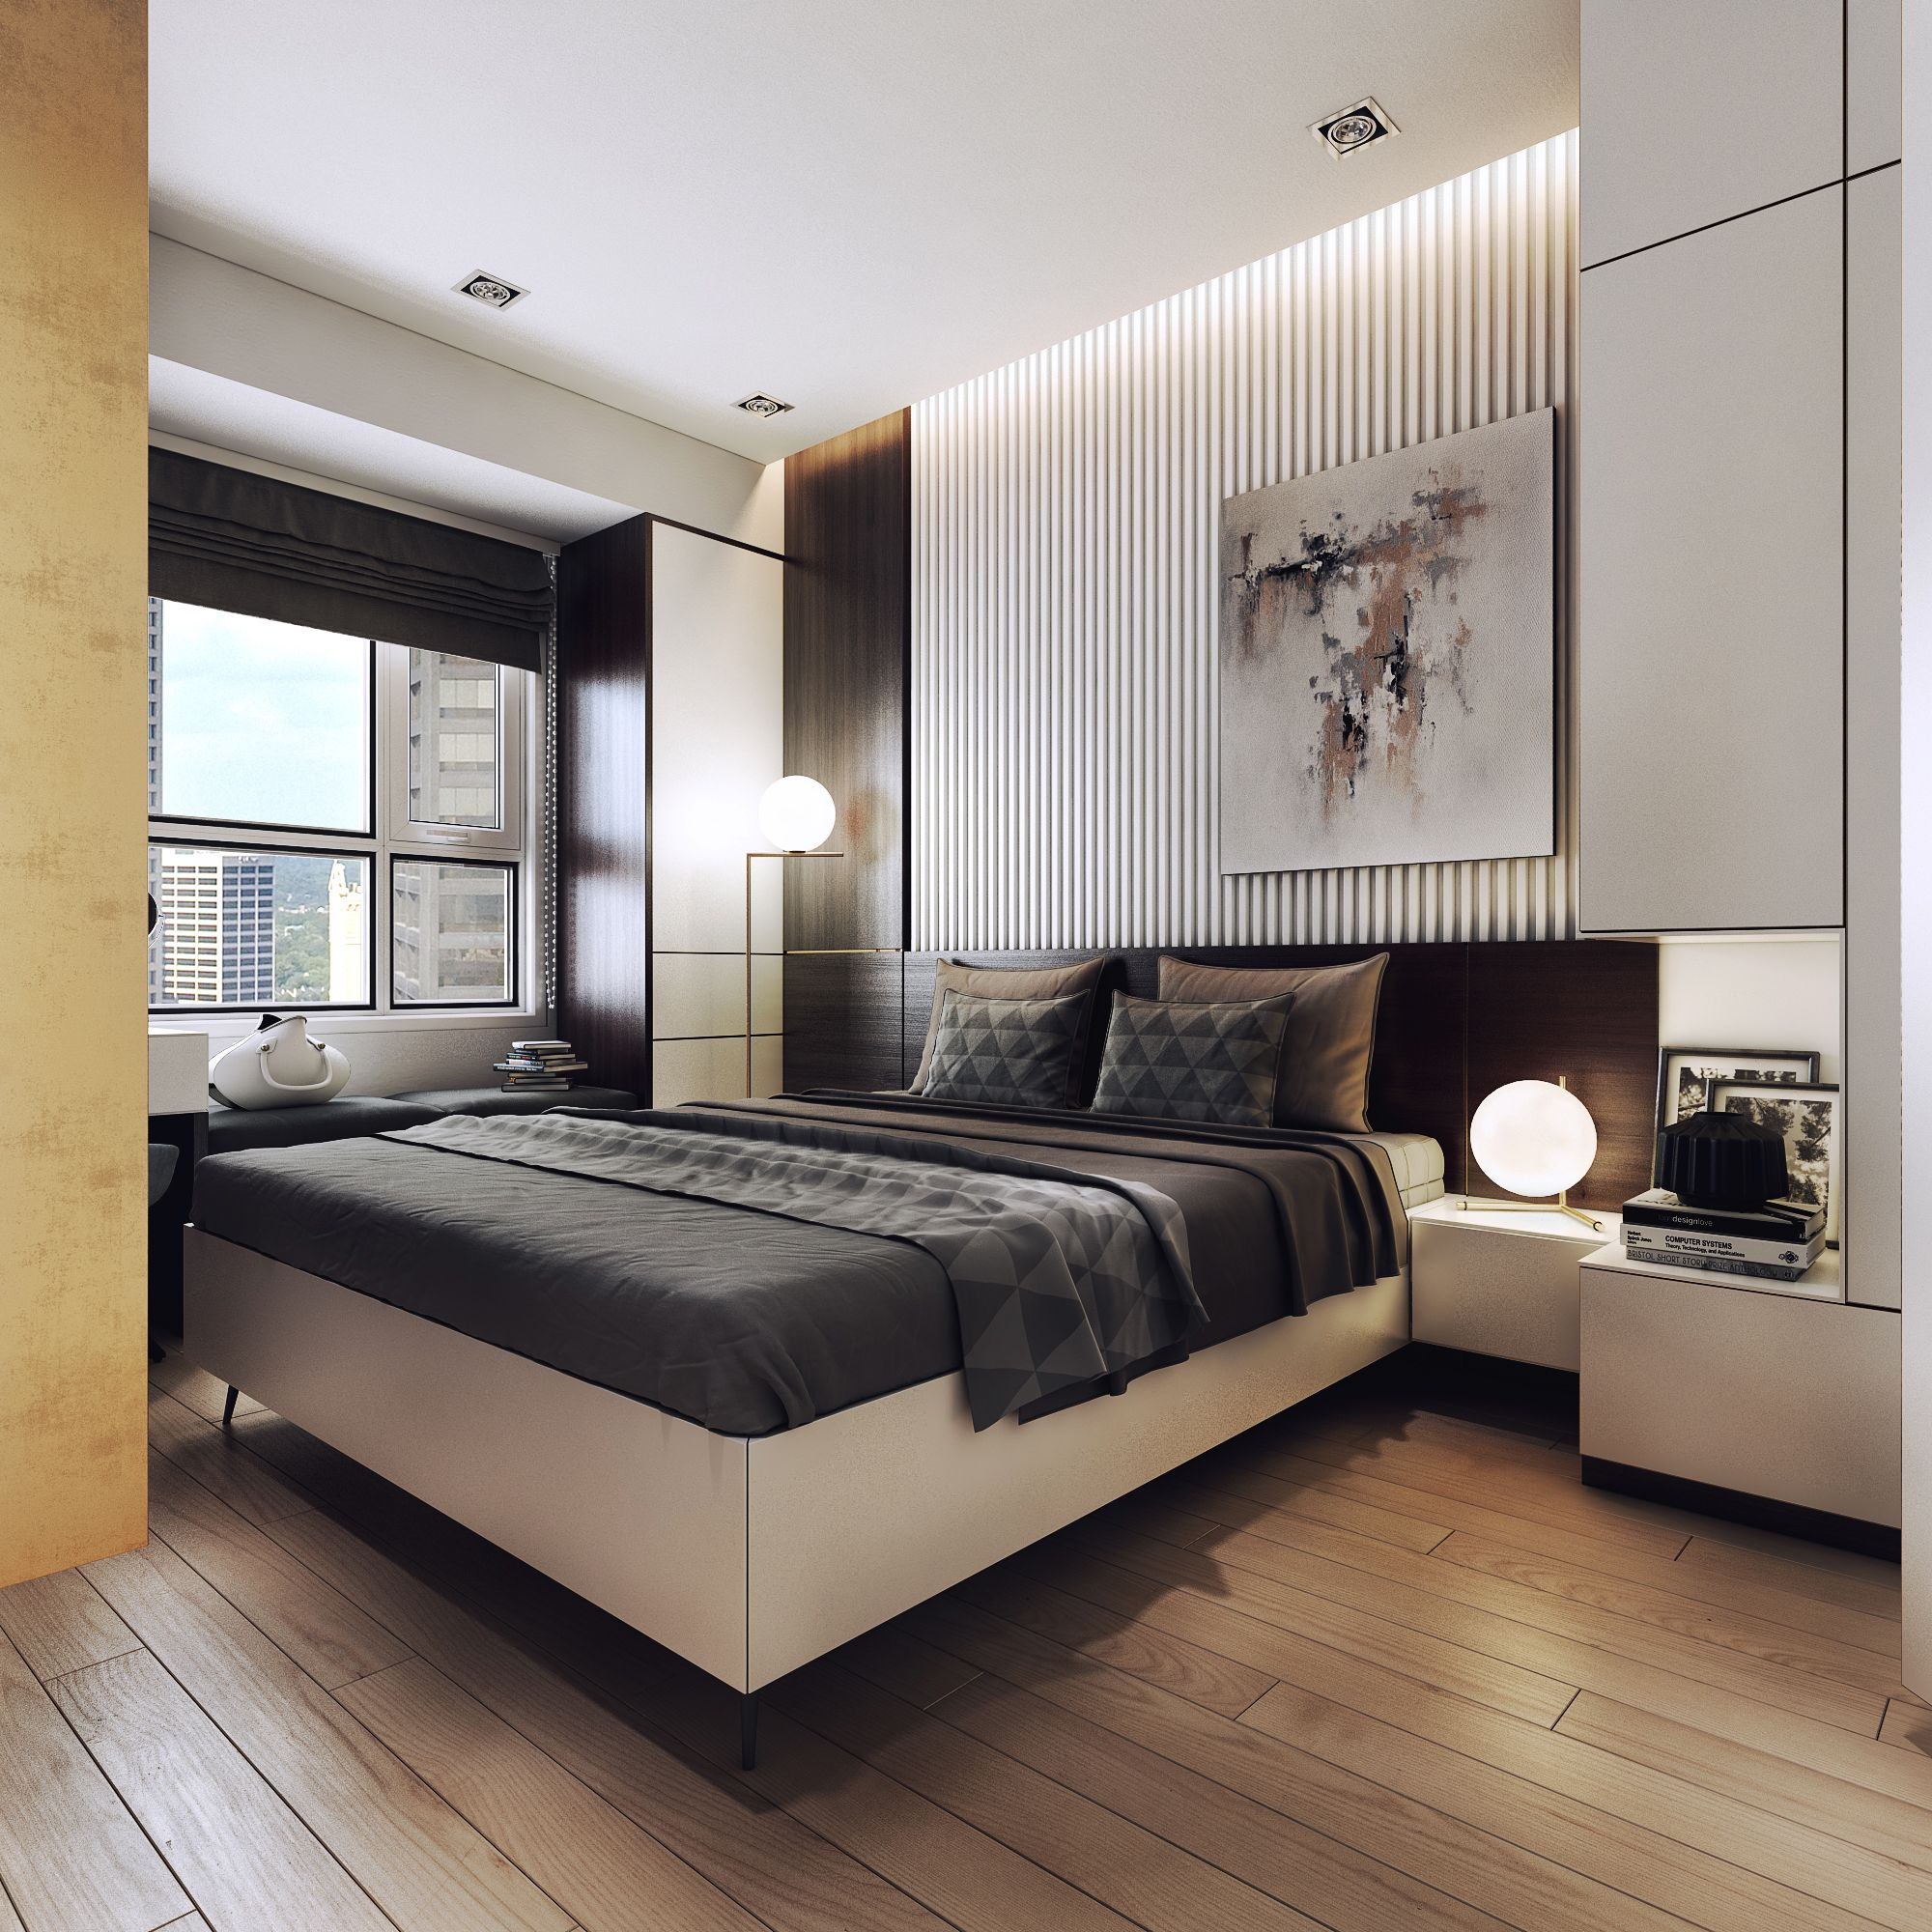 Luxurious Apartment With Dark Interiors And Stunning Lighting SEE MORE